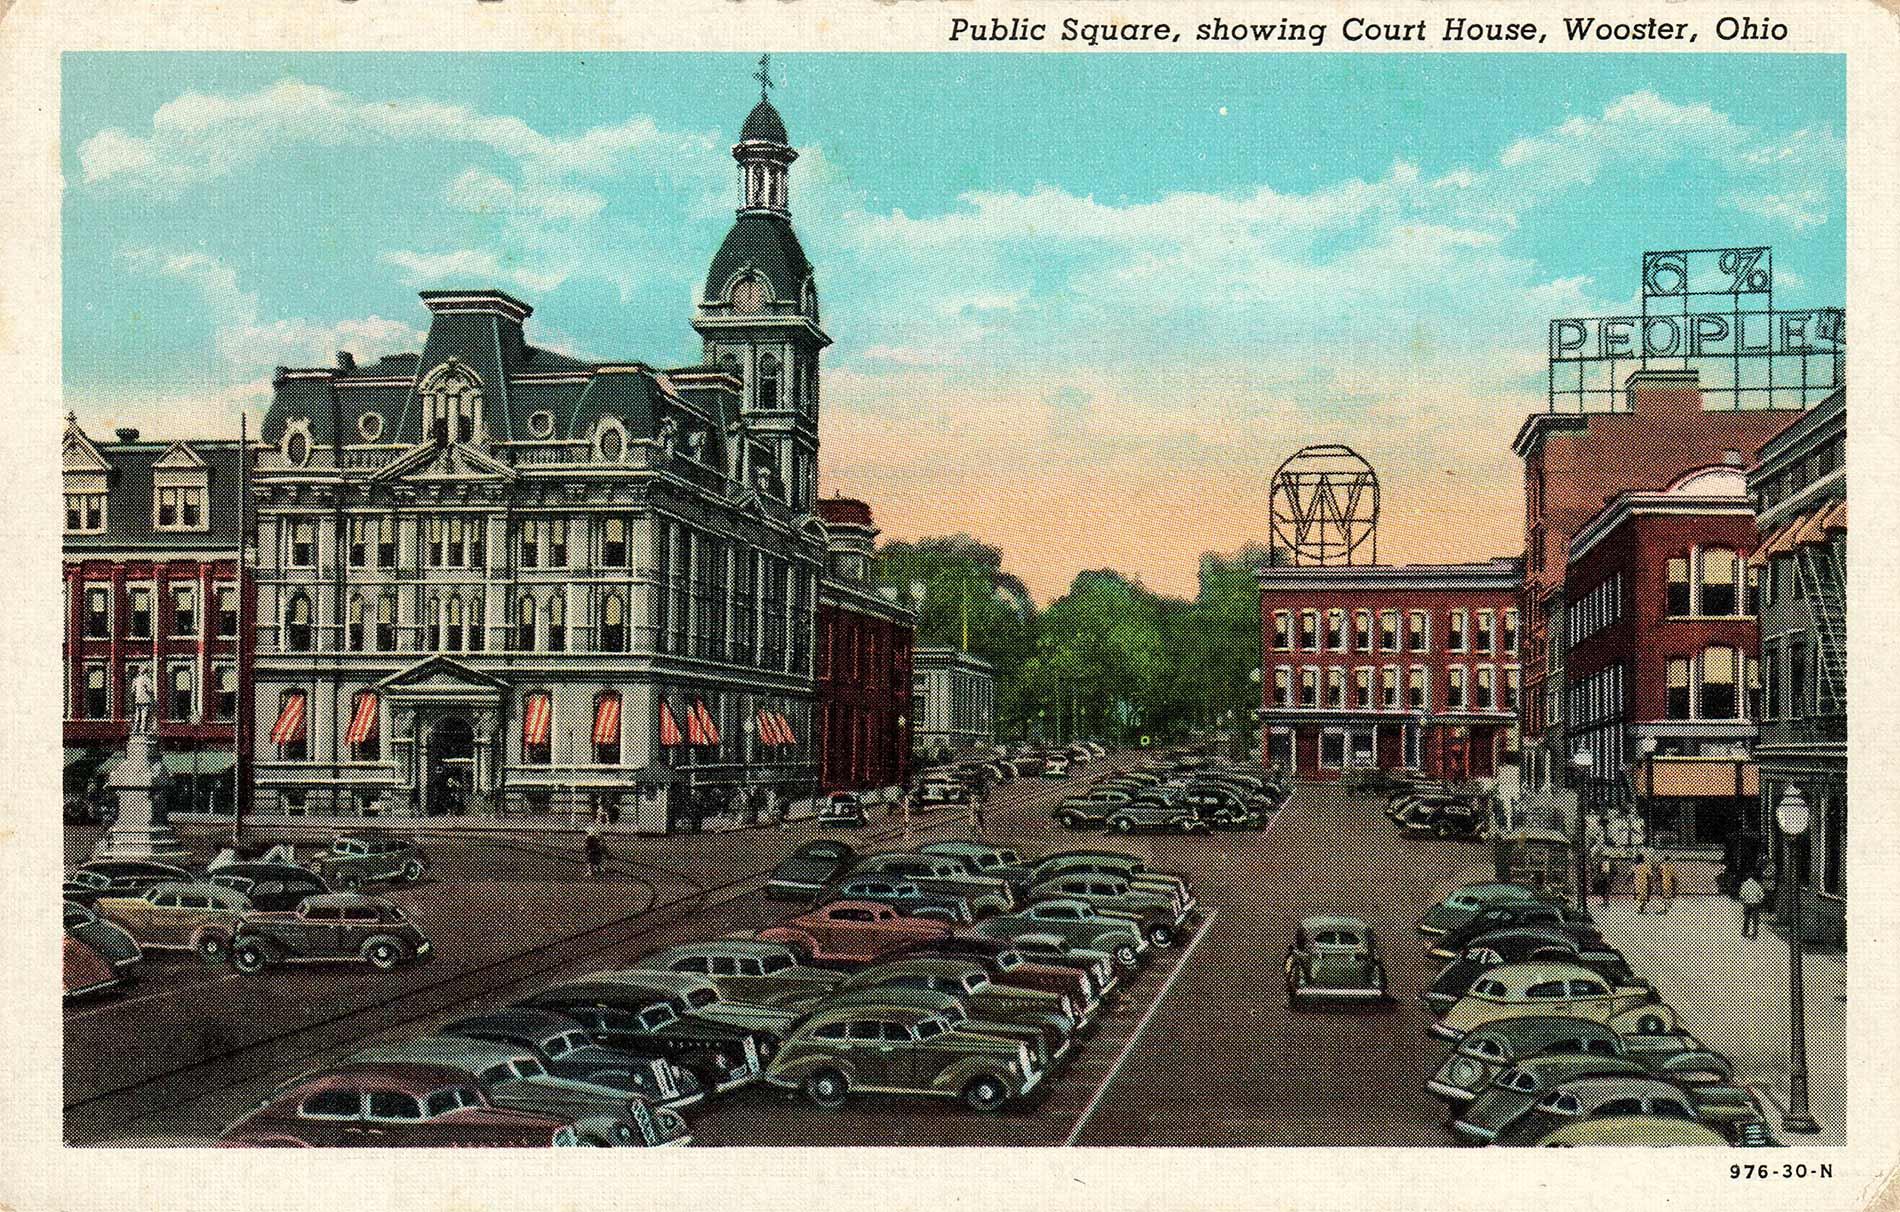 fig. 5 _ Wooster's Public Square in the 1940s